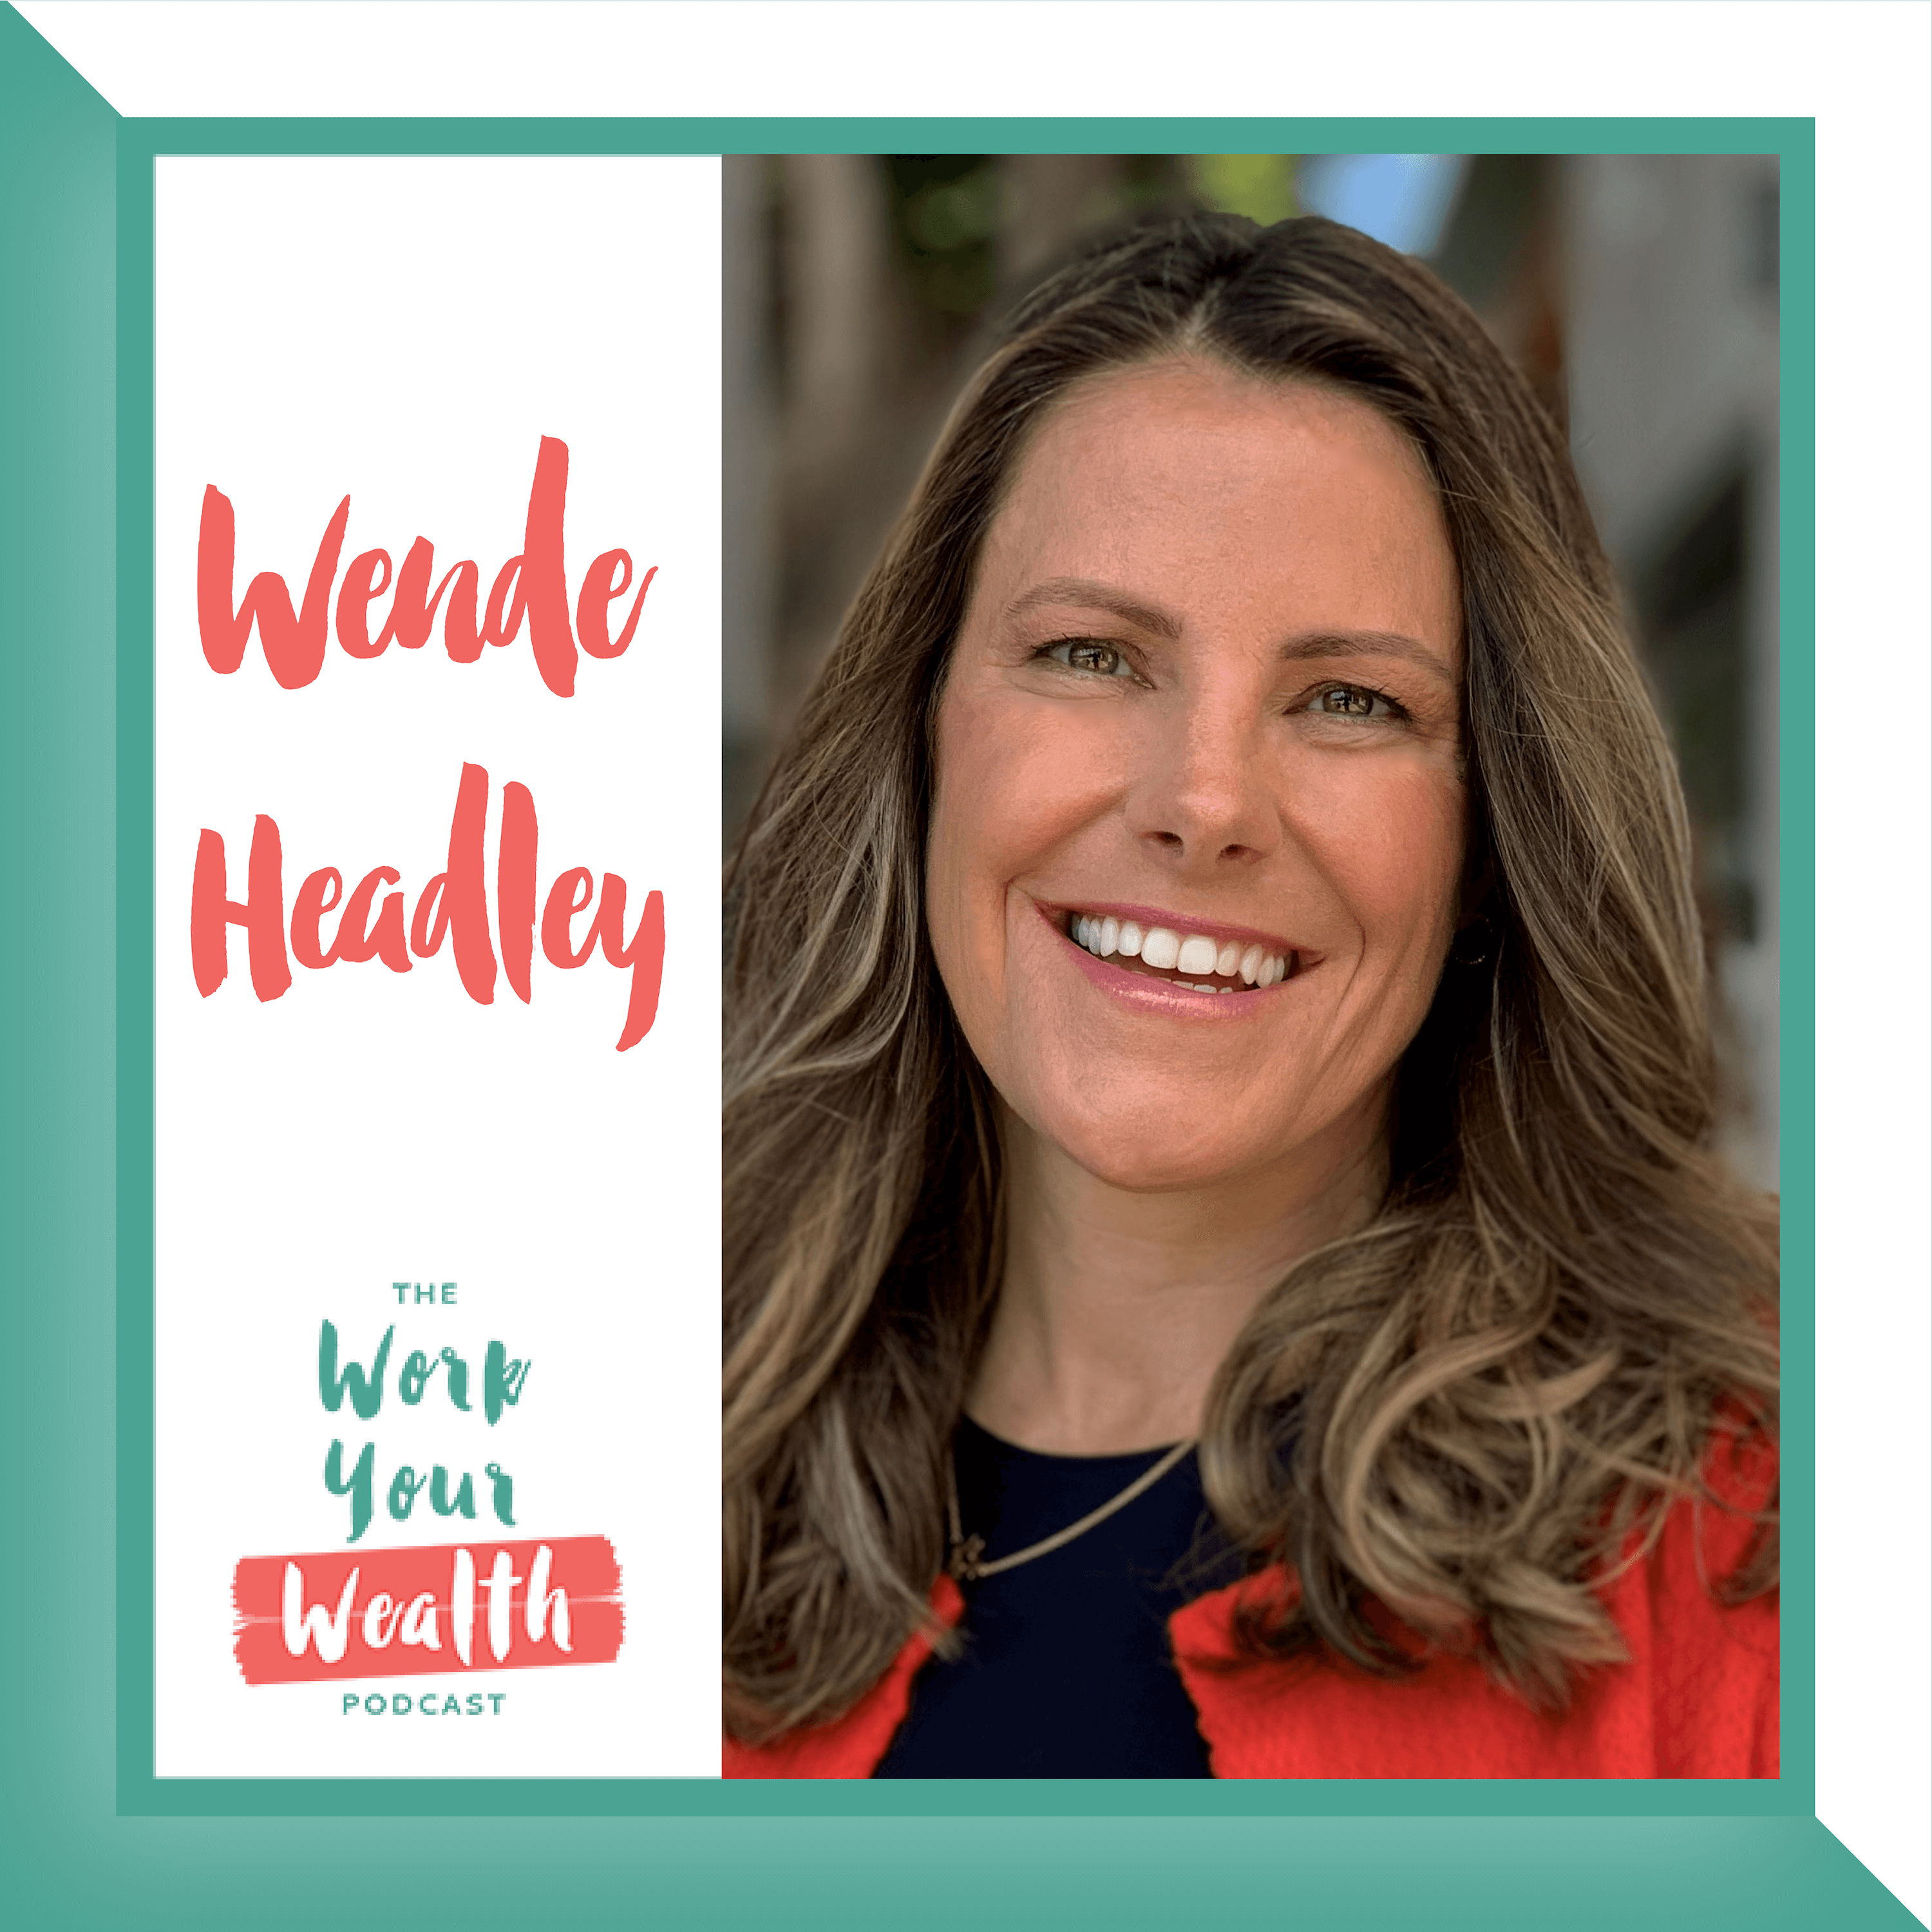 Episode 109: Giving Yourself Permission in Your Career with Wende Headley